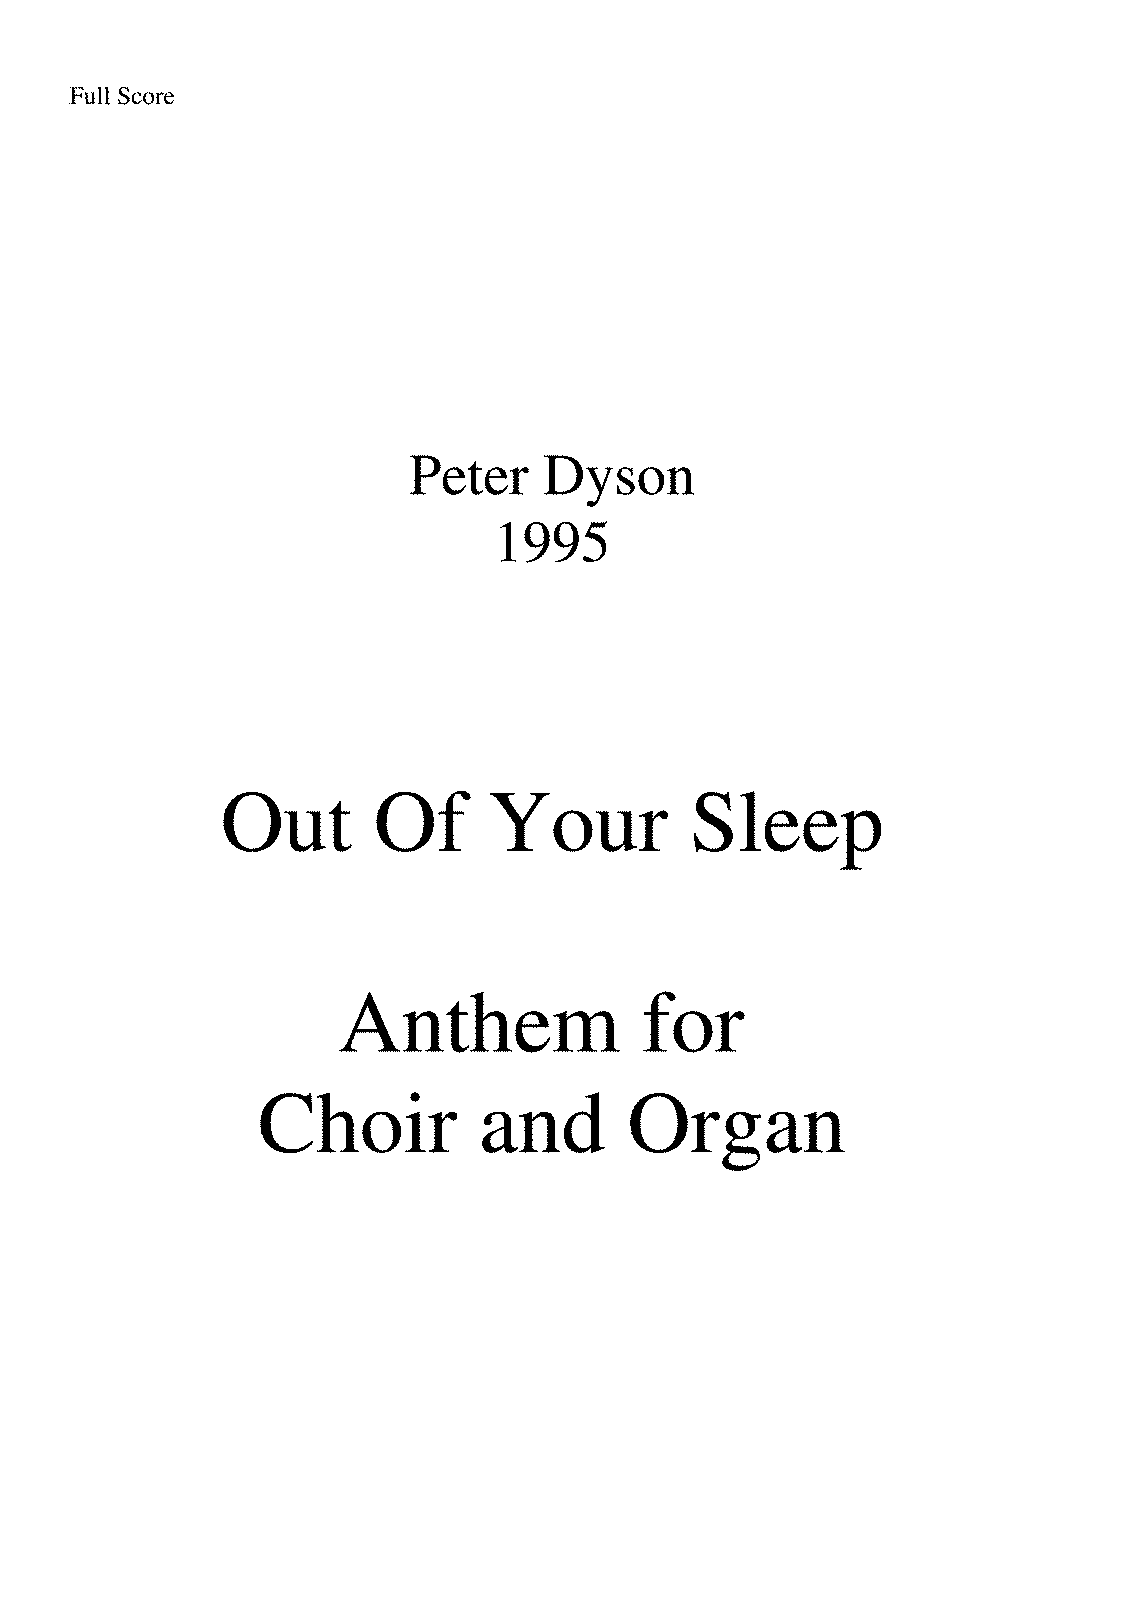 PMLP135174-Peter Dyson 1995 Out Of Your Sleep.pdf